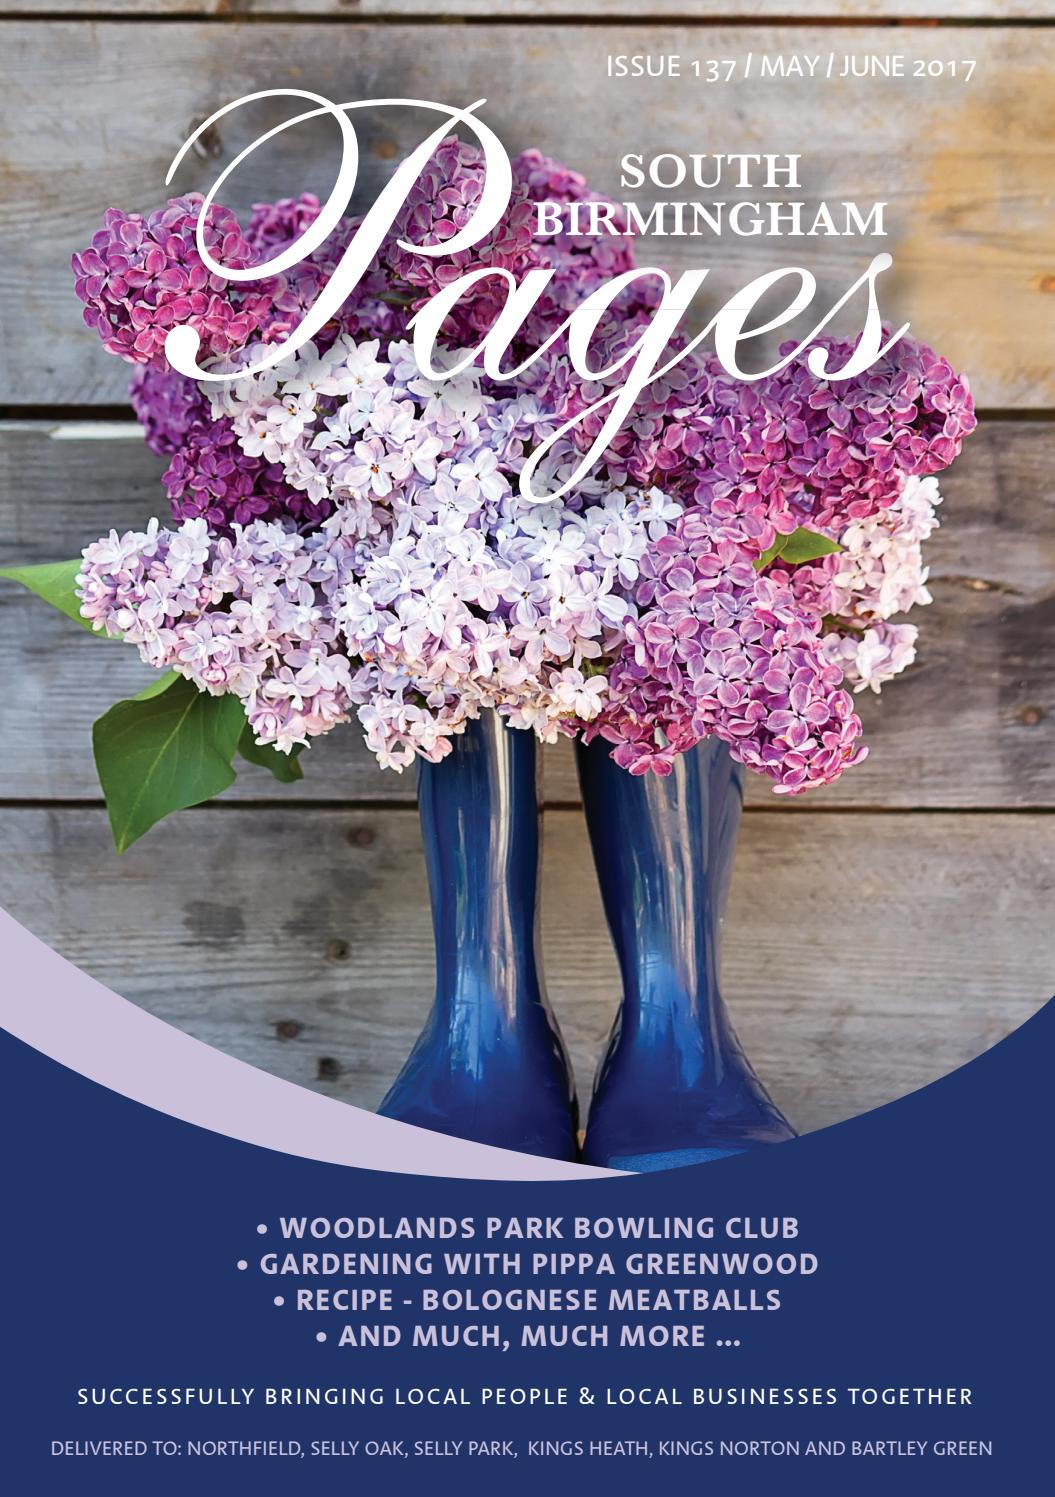 South Birmingham Pages May 2017 By Wendy Bird Issuu